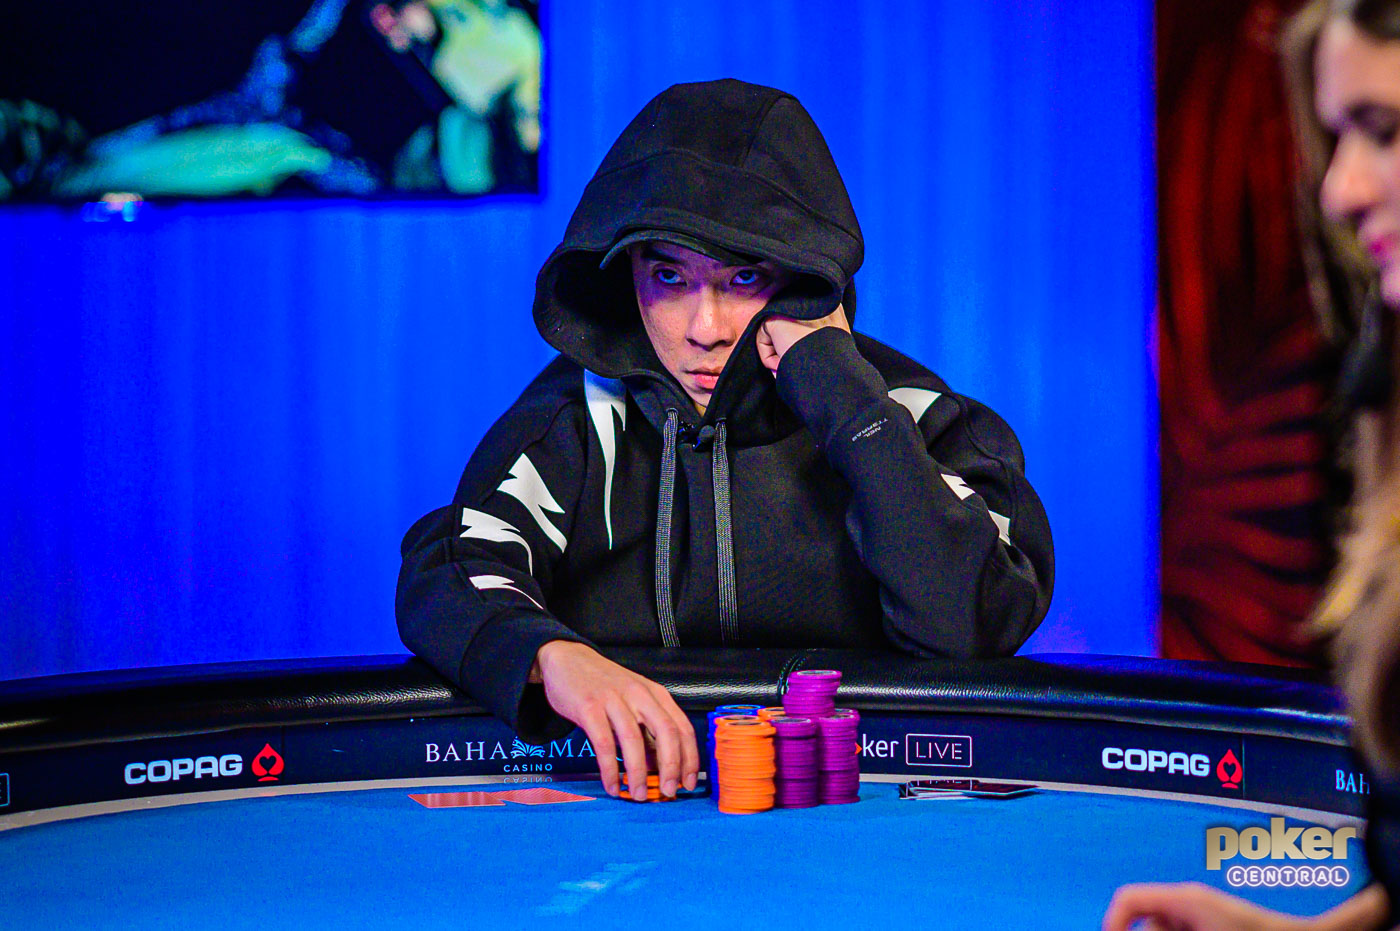 Super High Roller Bowl VI: Daniel Dvoress takes the title and wins $4M; Wai Leong Chan runner up